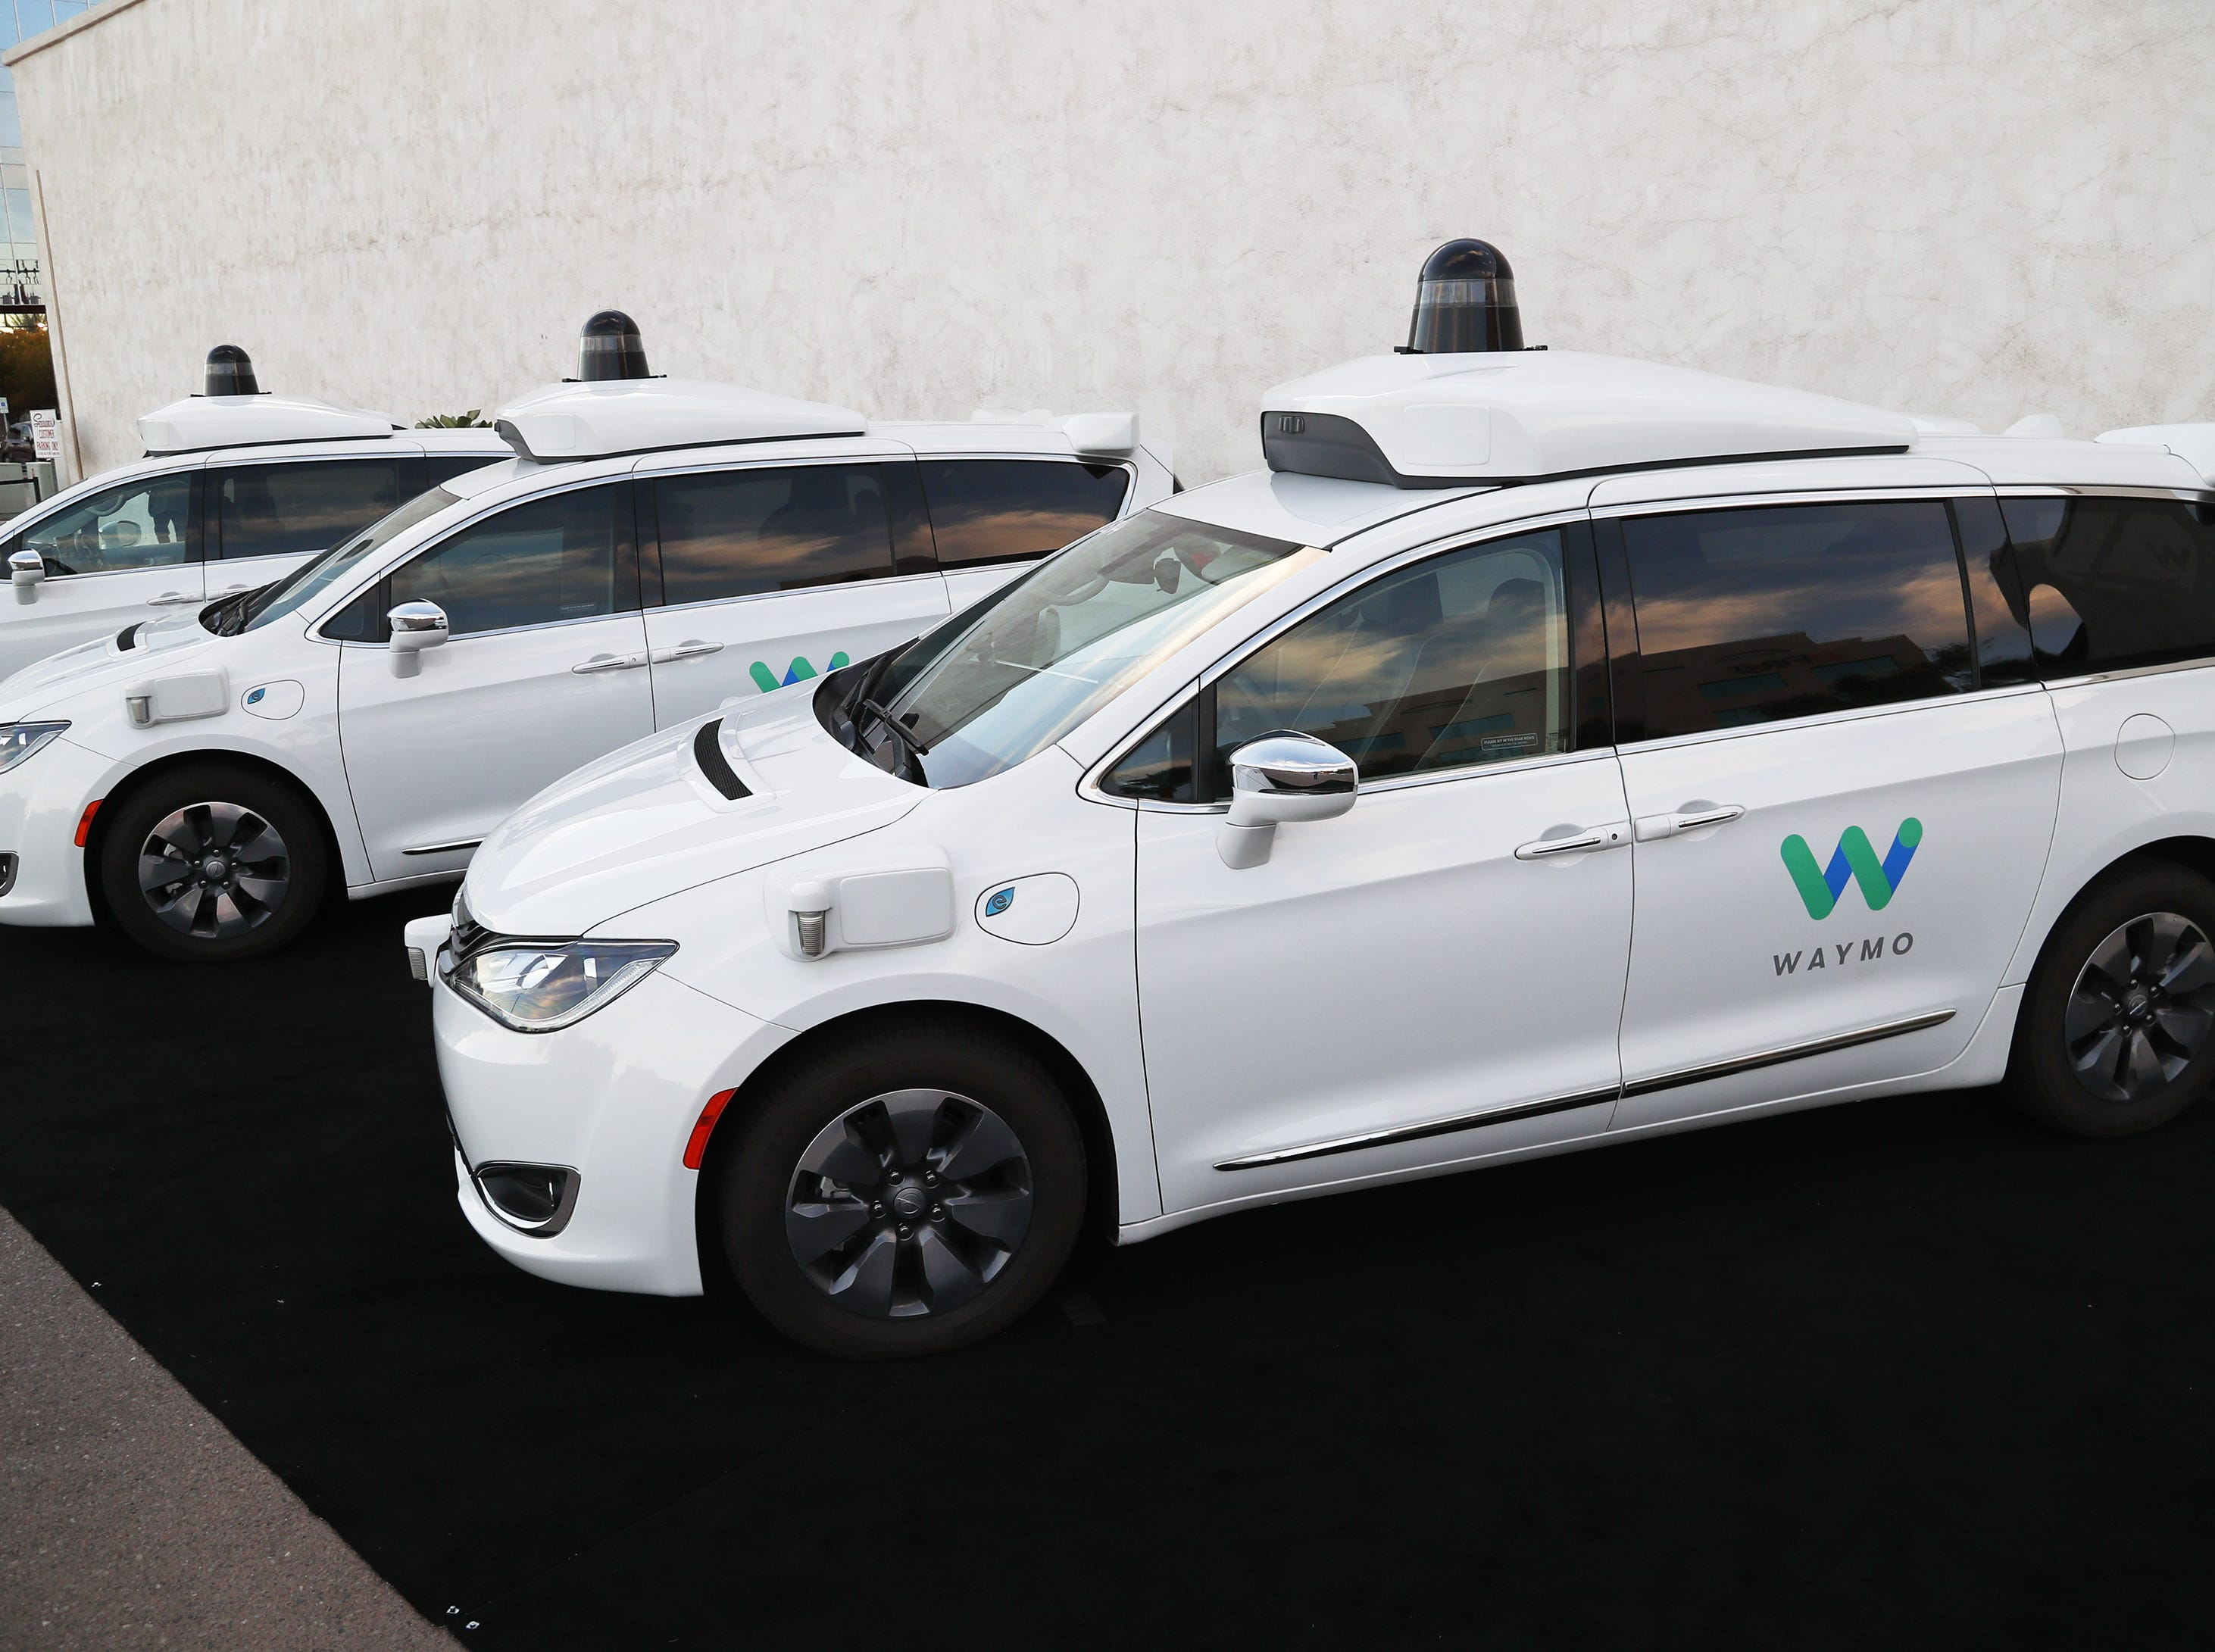 Waymo self-driving cars in Chandler. Tempe, Mesa, Chandler and Gilbert will be the first cities in the world with Waymo One self-driving service.